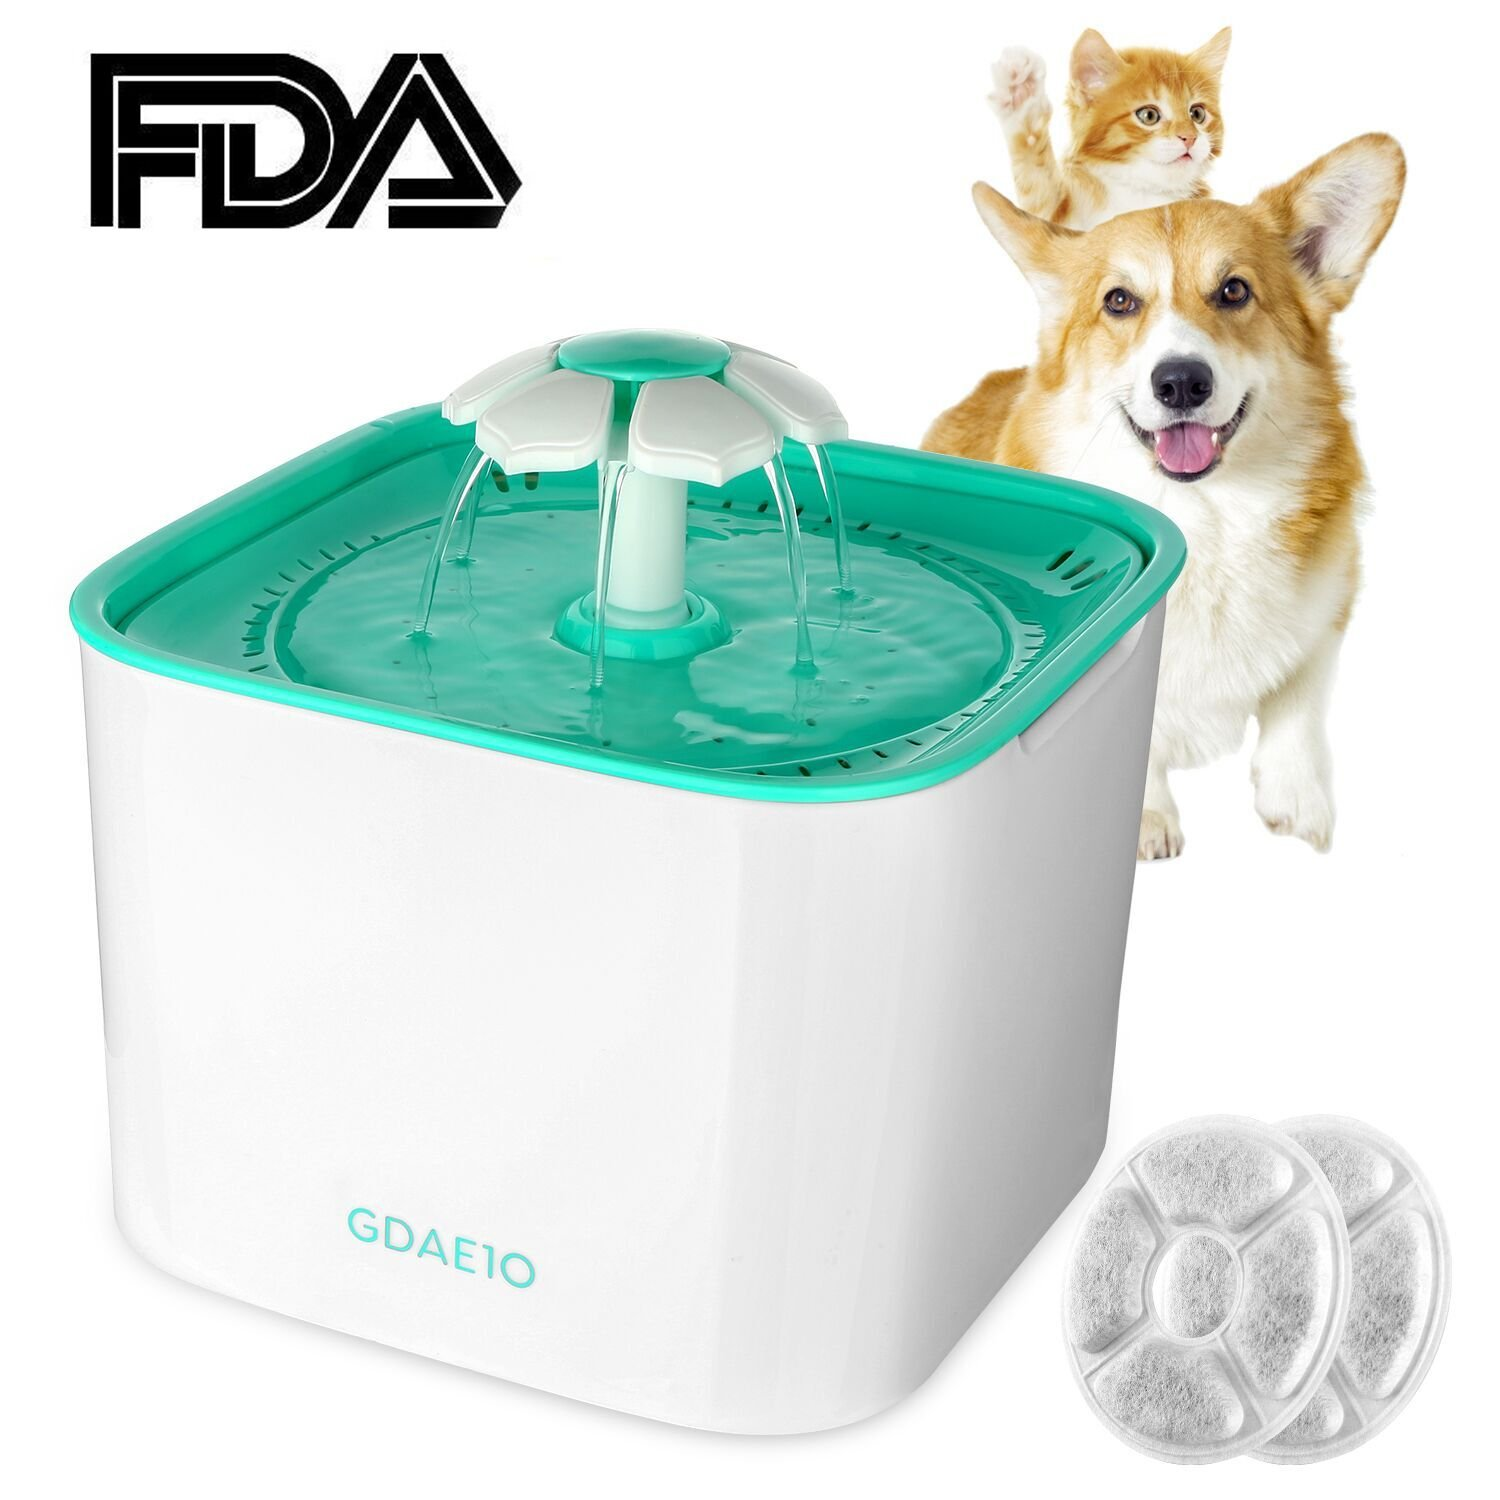 GDAE10 Pet Fountain, Cat Water Dispenser, Automatic Pet Drinking Fountain 2L Super Quiet Flower Circulating Silent Pump with 2 Replacement Filters for Cats, Dogs, Birds and Small Animals